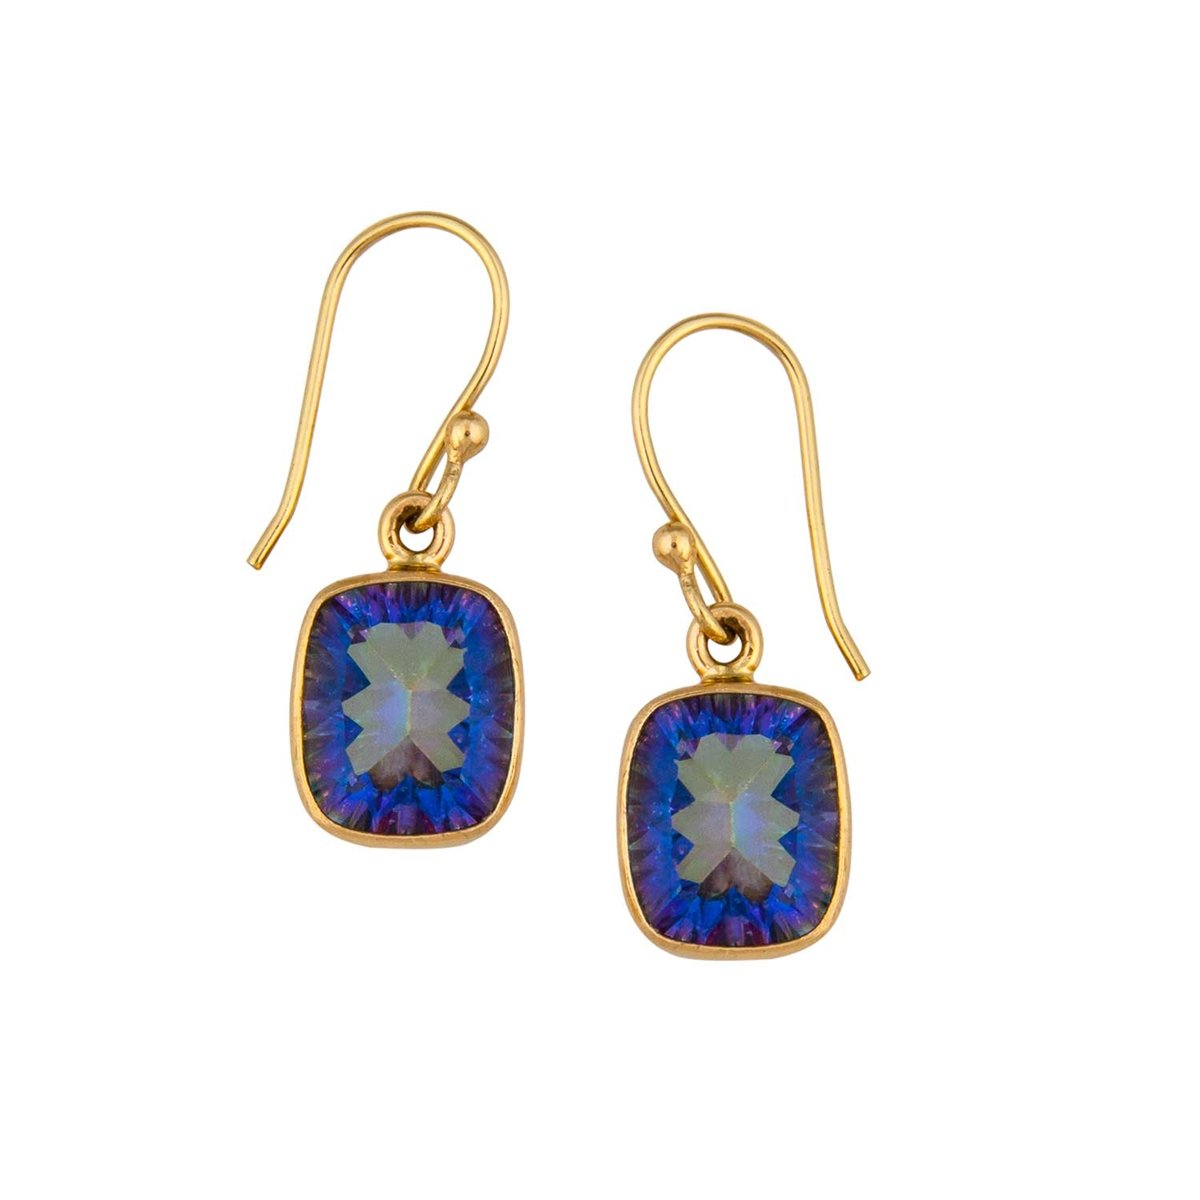 Alchemia Mystic Quartz Drop Earrings | Charles Albert Jewelry